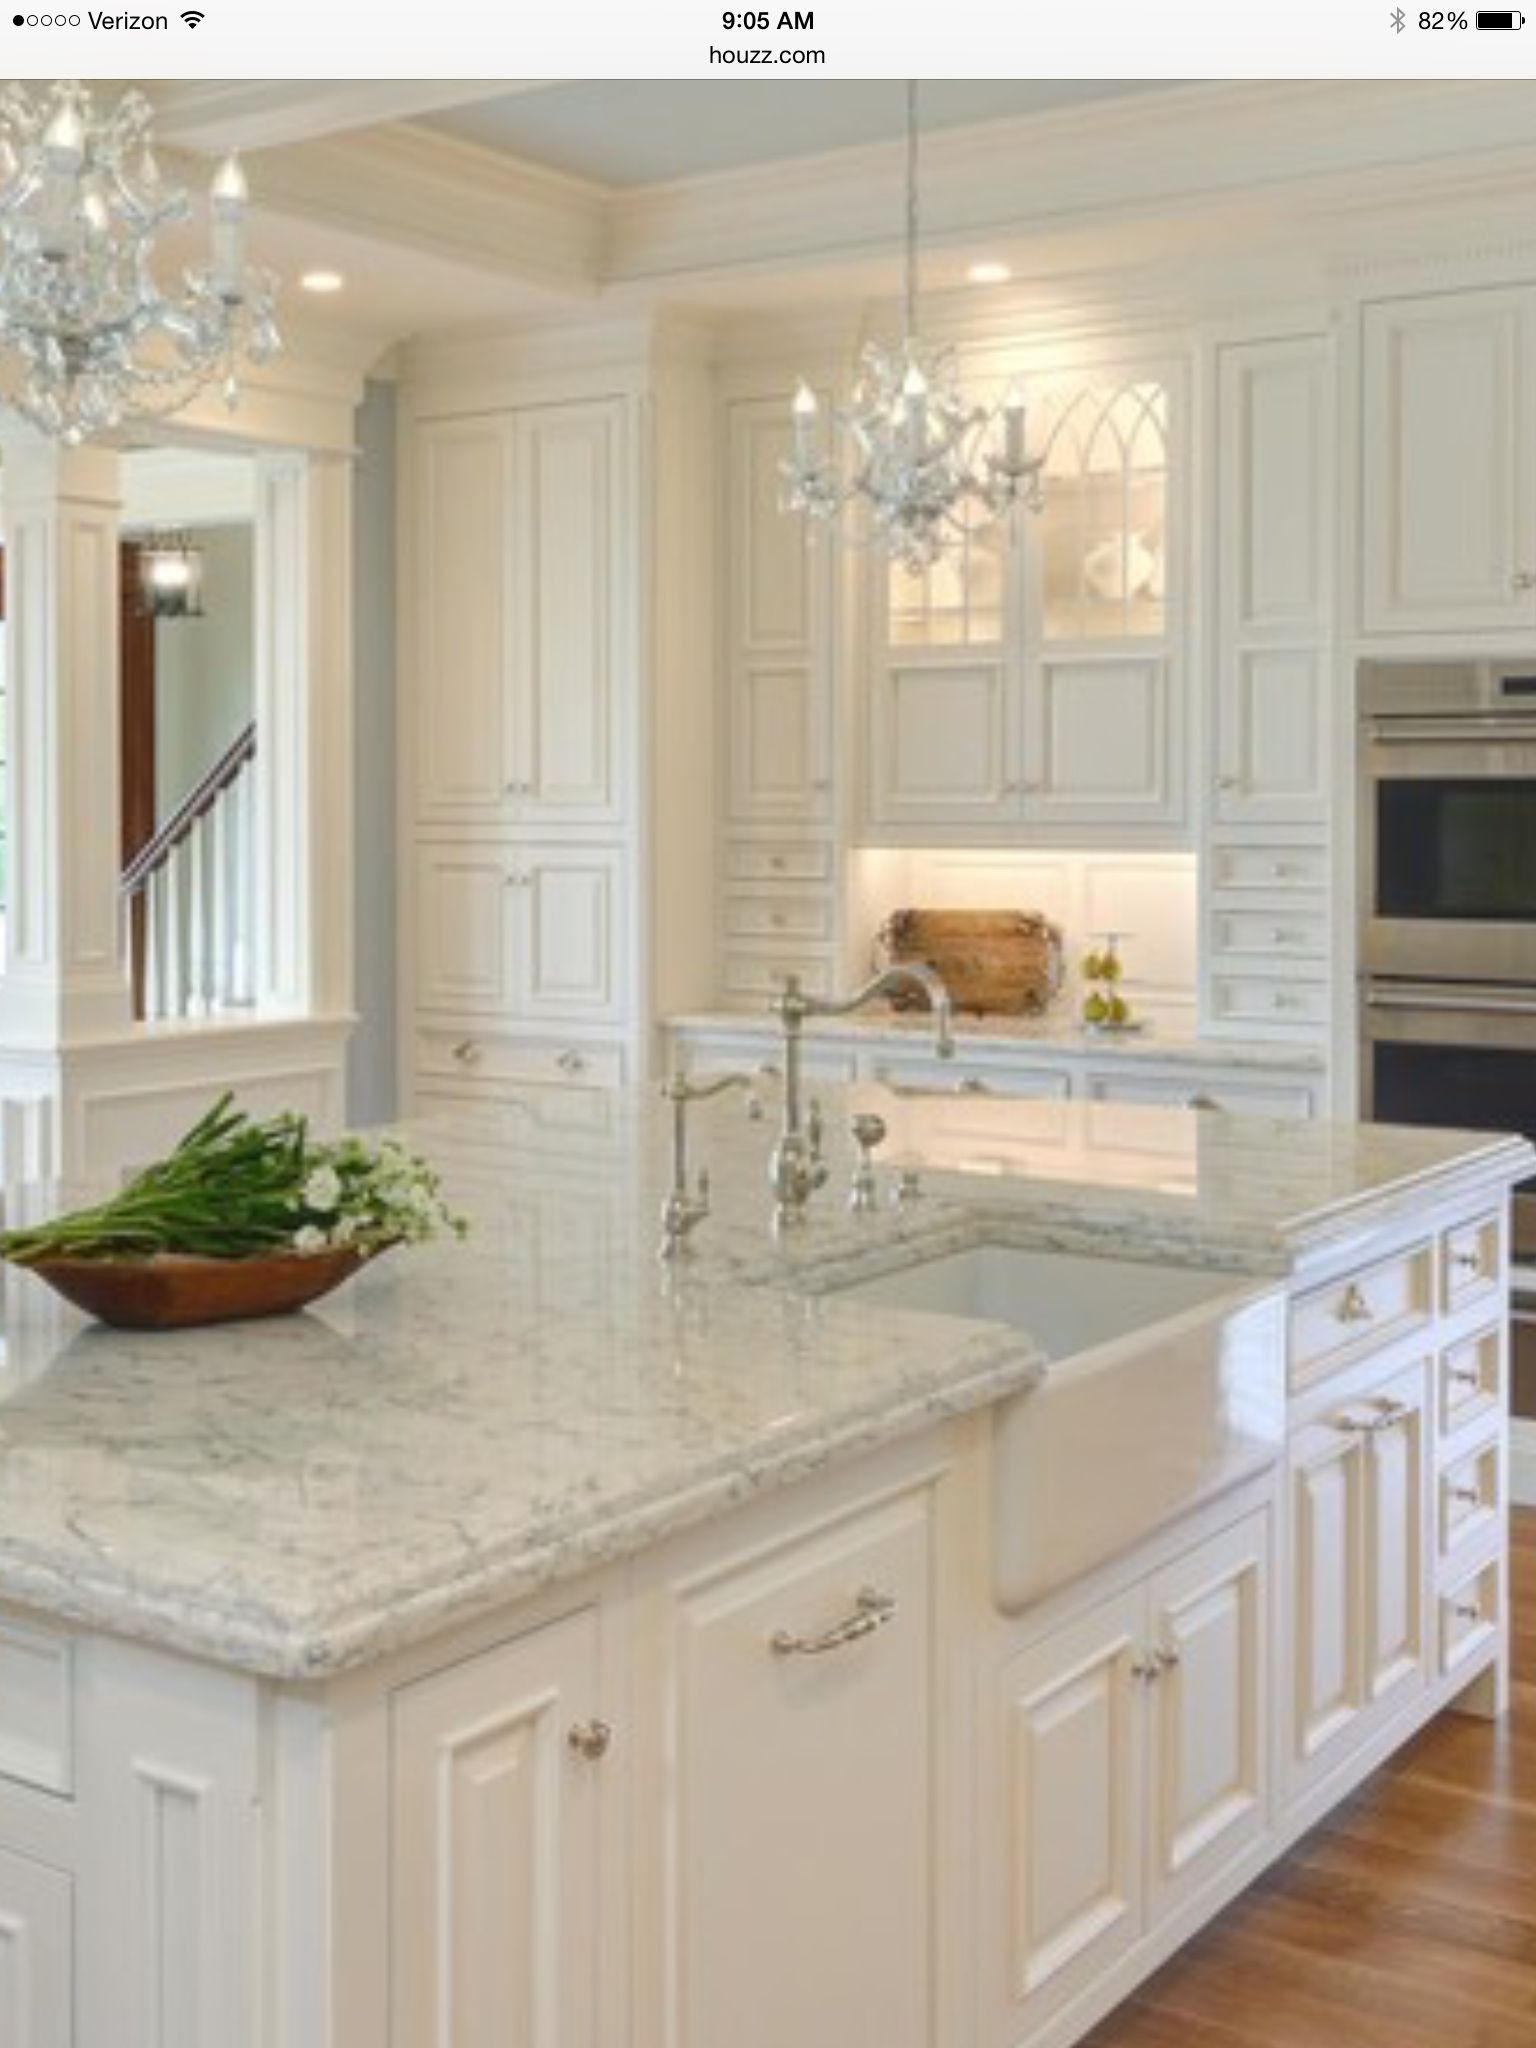 Lovely White Kitchen Cabinets With Light Quartz Countertops The Most Awesome And Al Antique White Kitchen Antique White Kitchen Cabinets White Kitchen Design